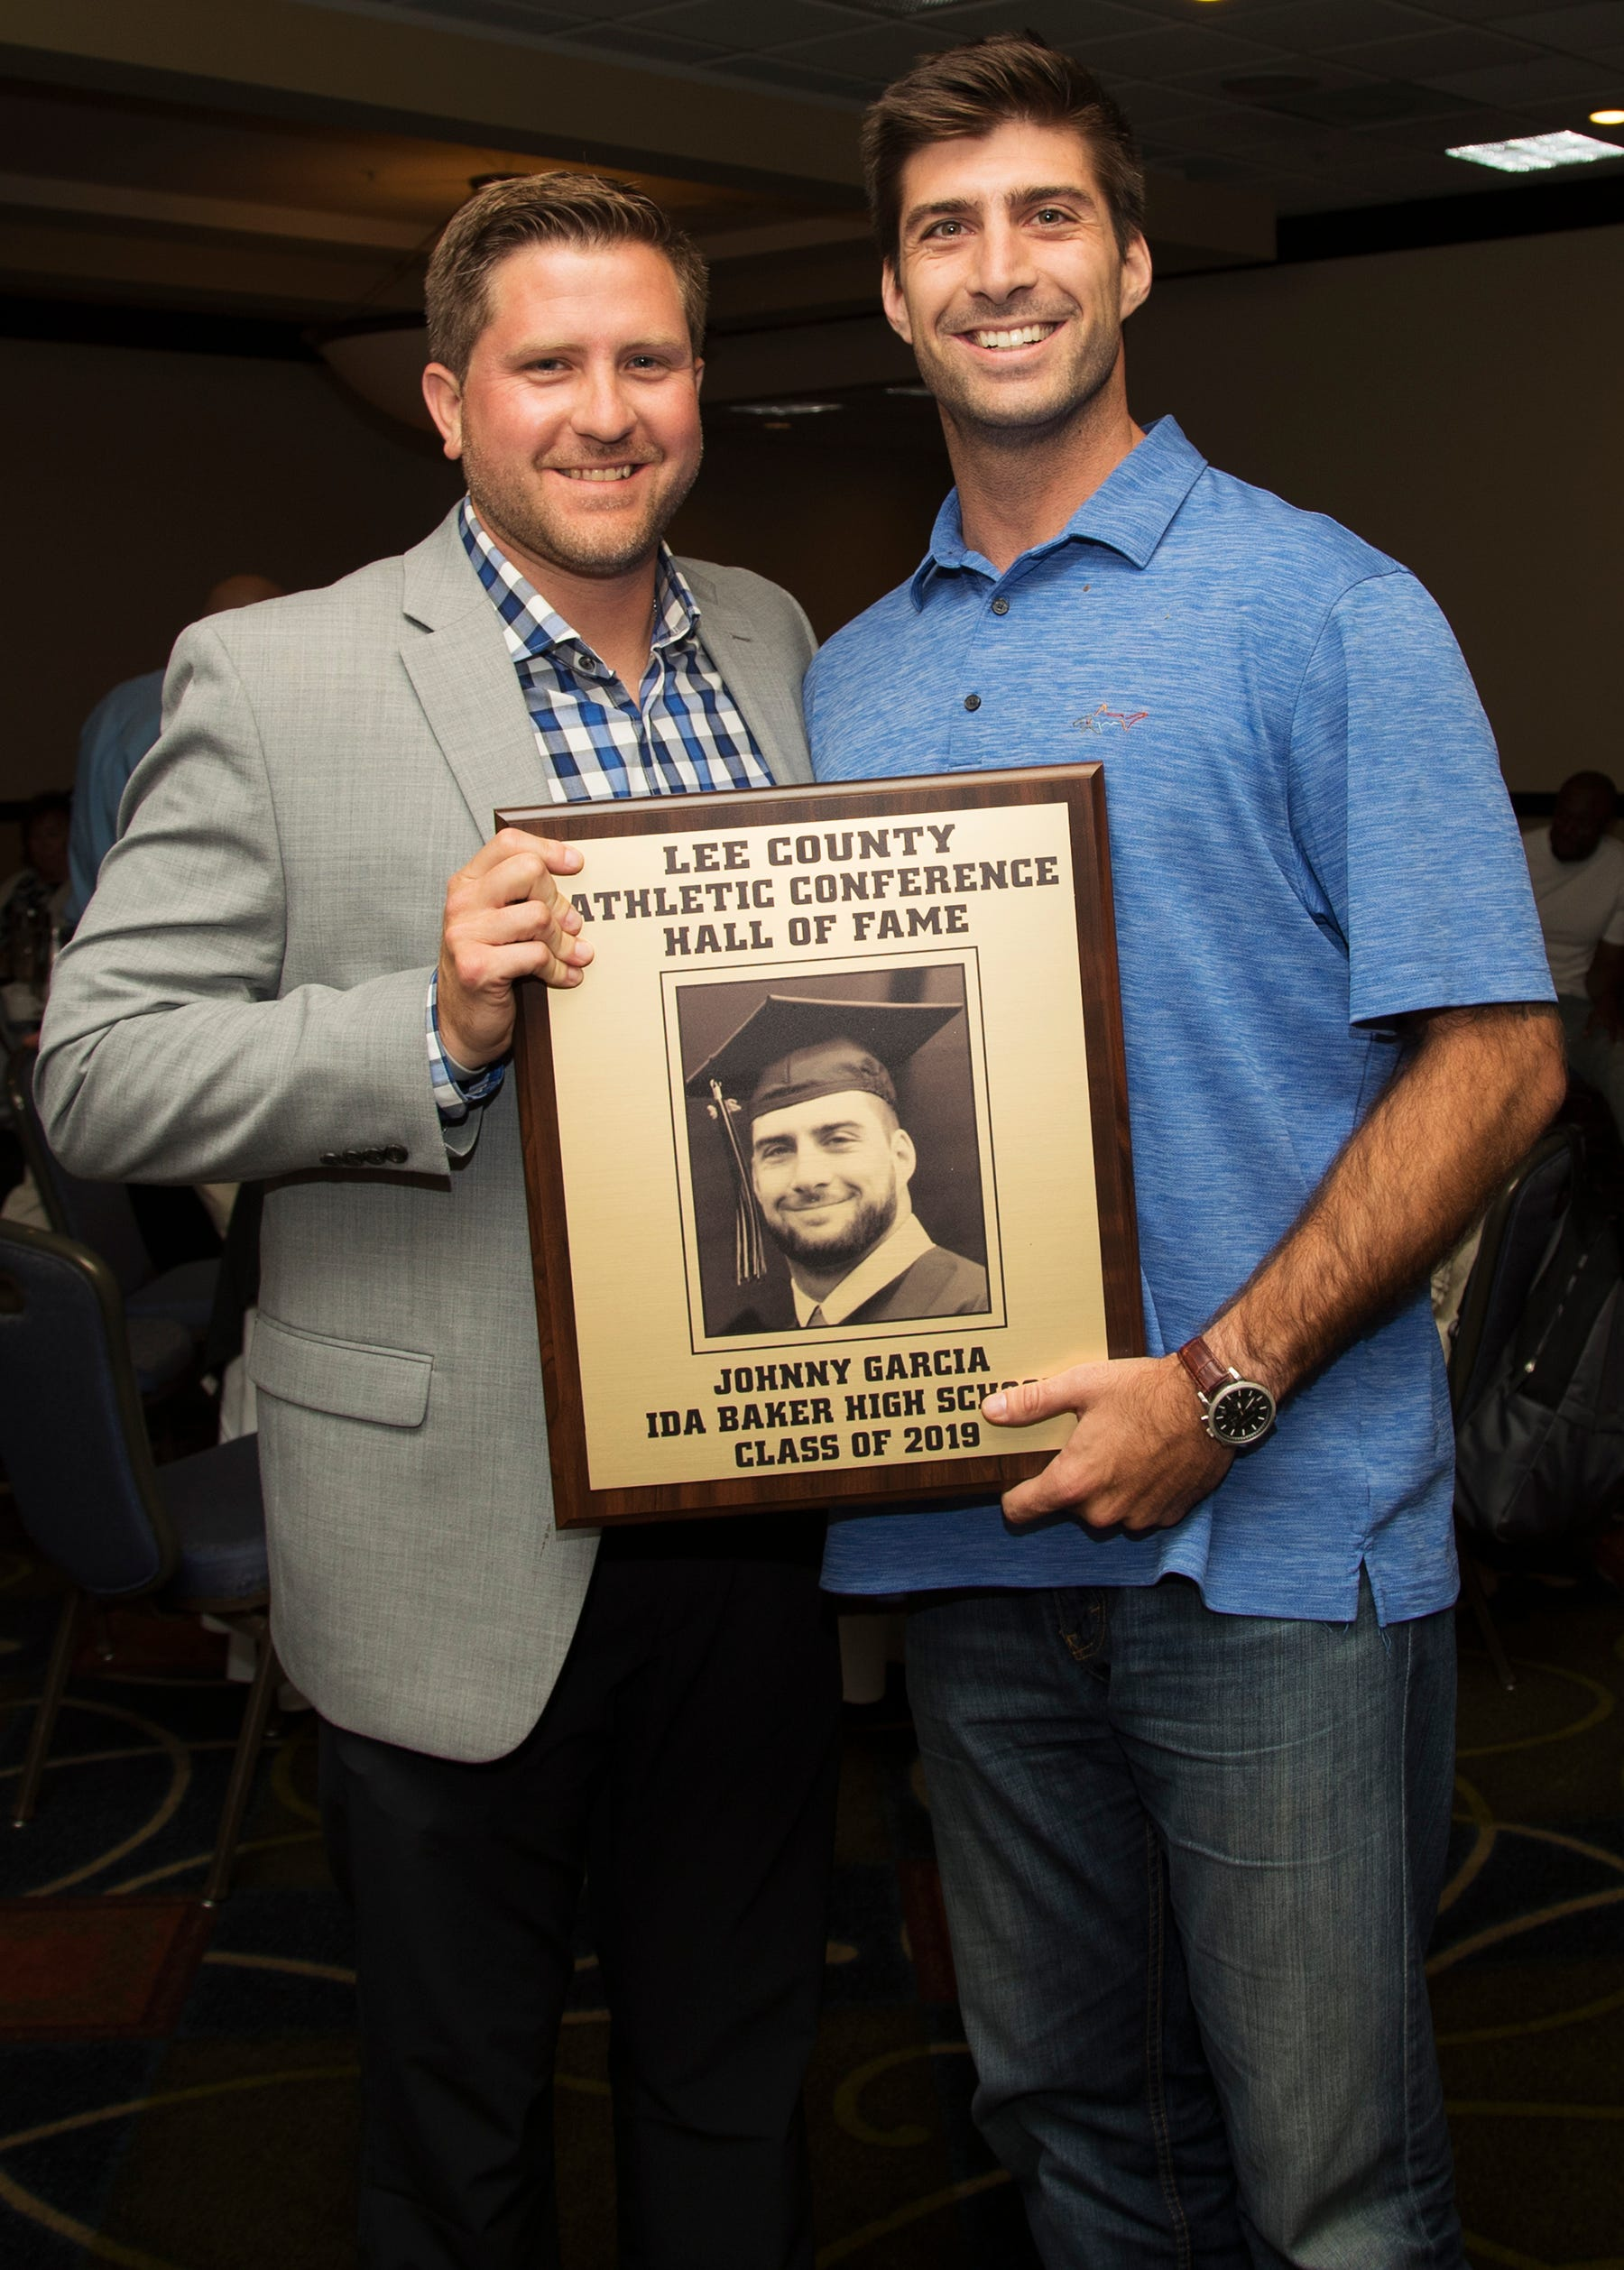 Jonathan Garcia, right, a 2010 Ida Baker High School graduate, is inducted into the Lee County Athletic Conference Hall of Fame on Thursday in Fort Myers. Garcia played football at Baker. Former Ida Baker football coach Brian Conn, left, is among Garcia's supporters.